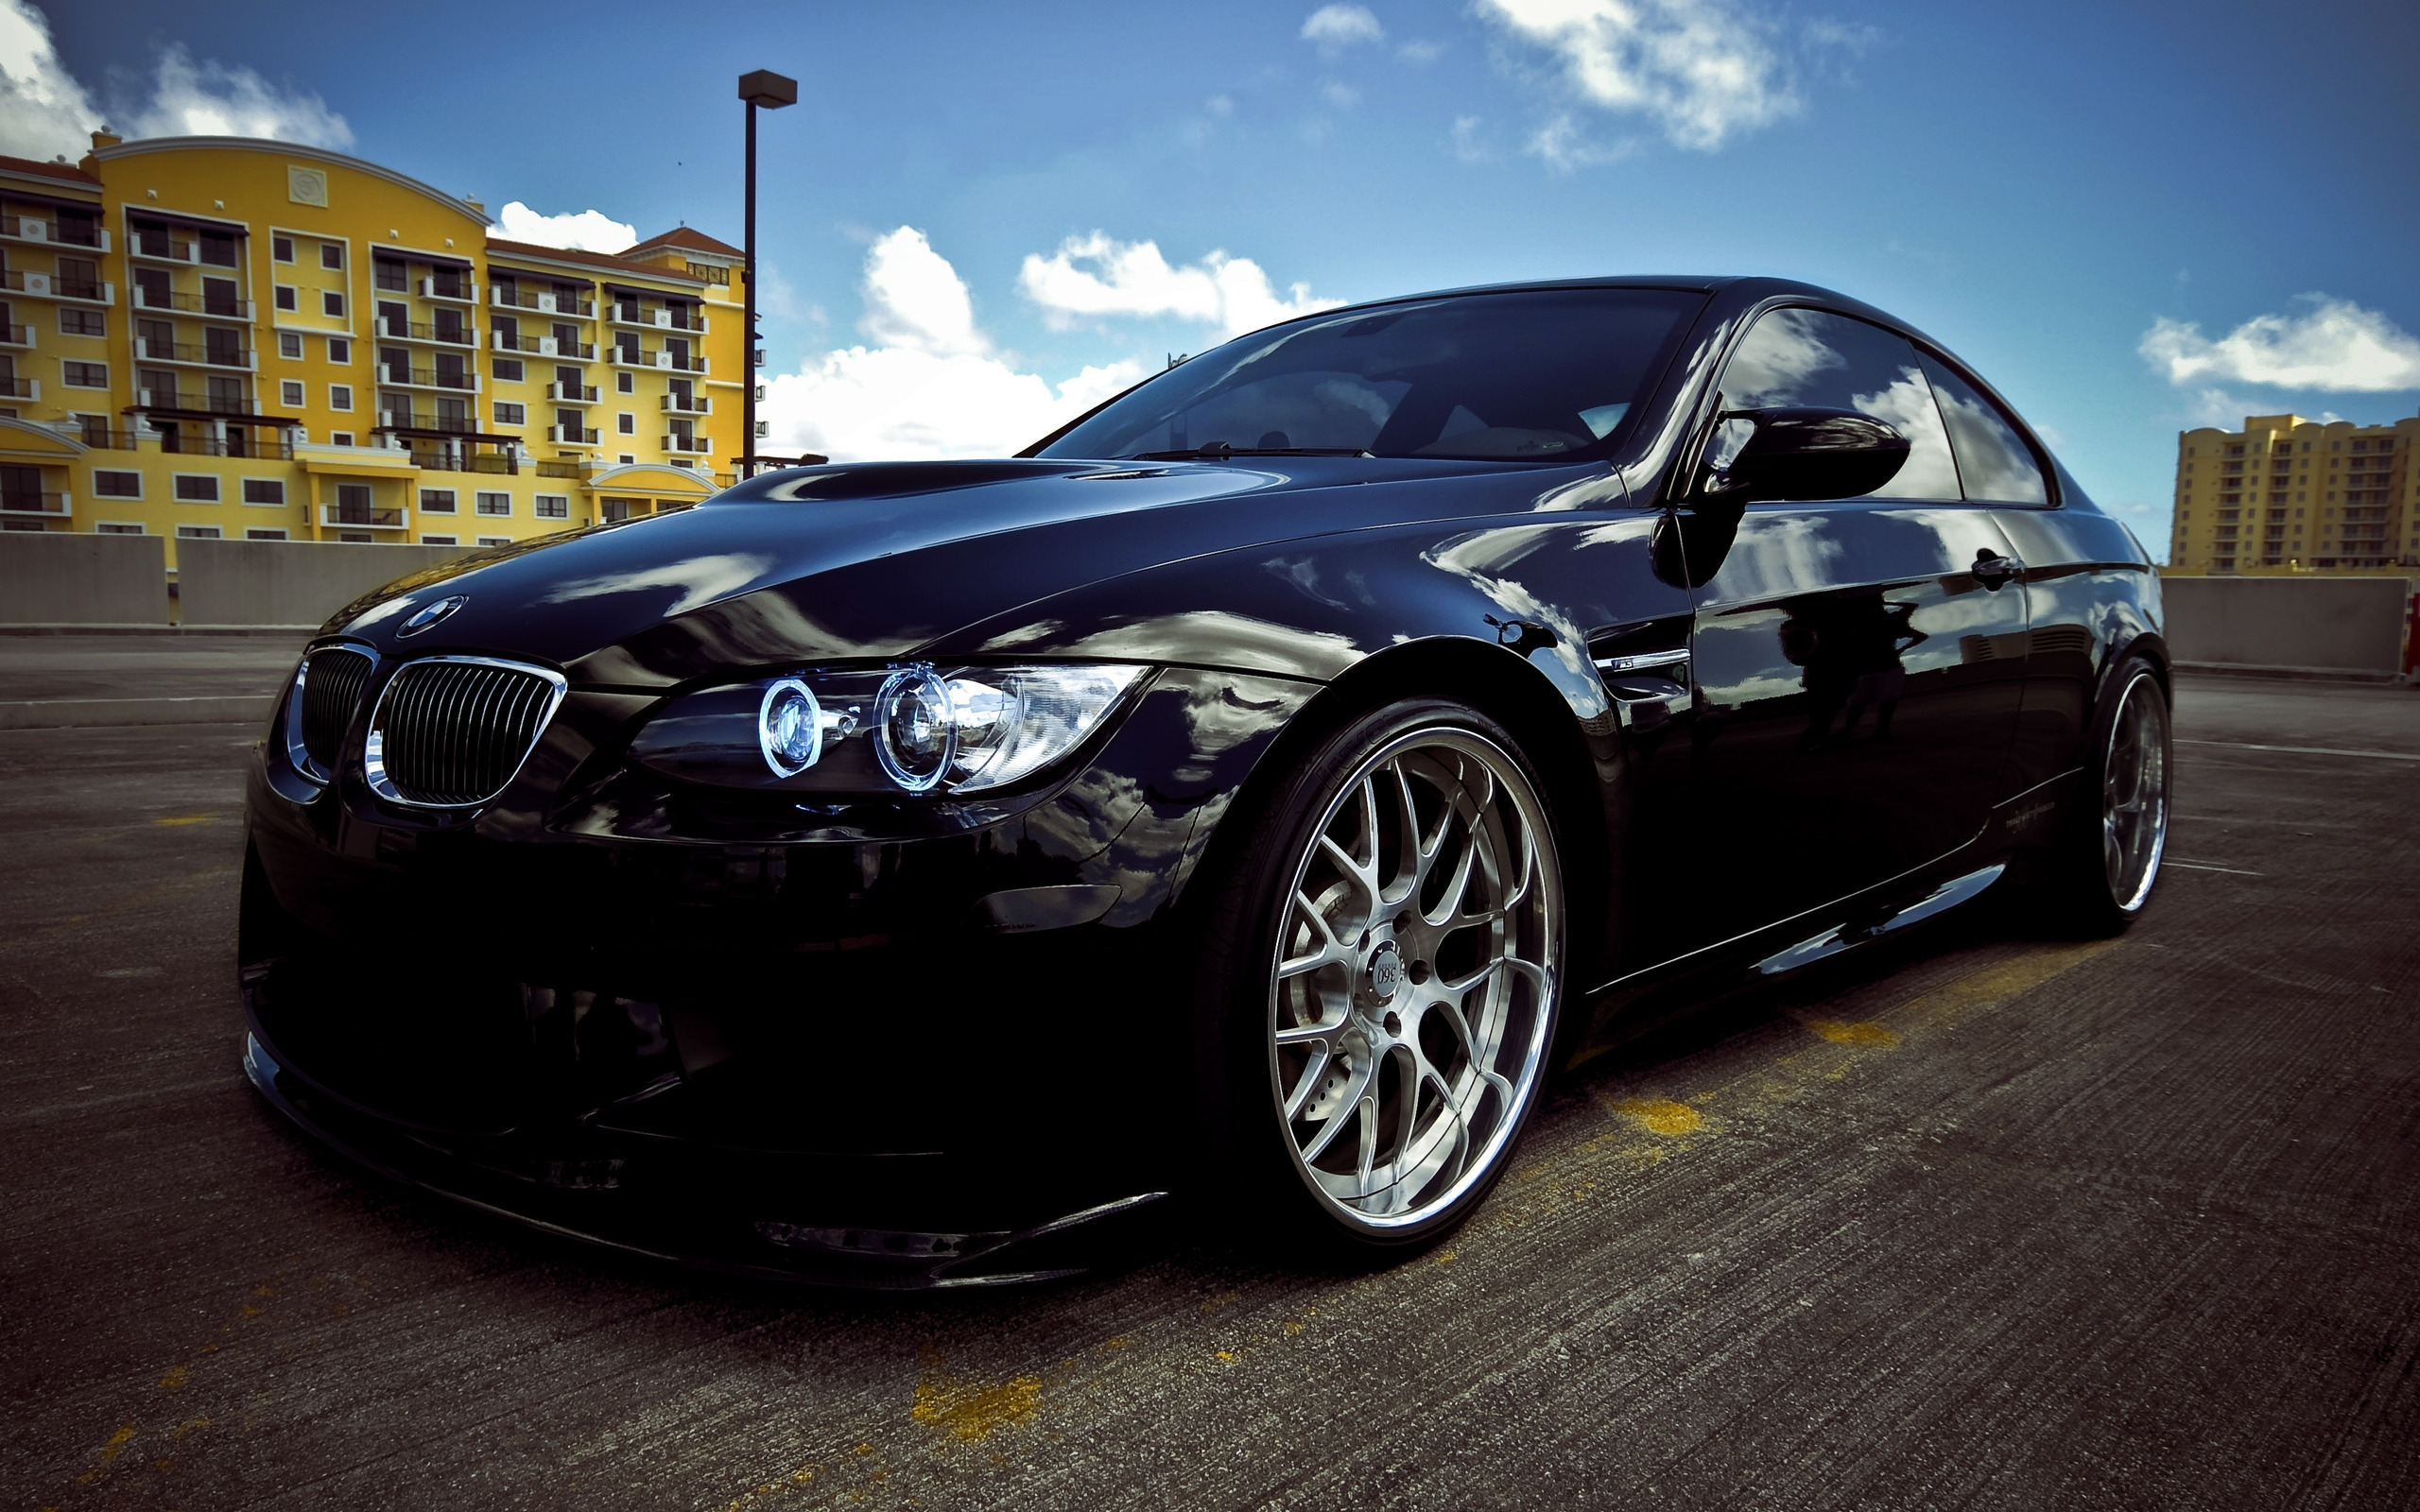 BMW M3 2010 Black for 2560 x 1600 widescreen resolution